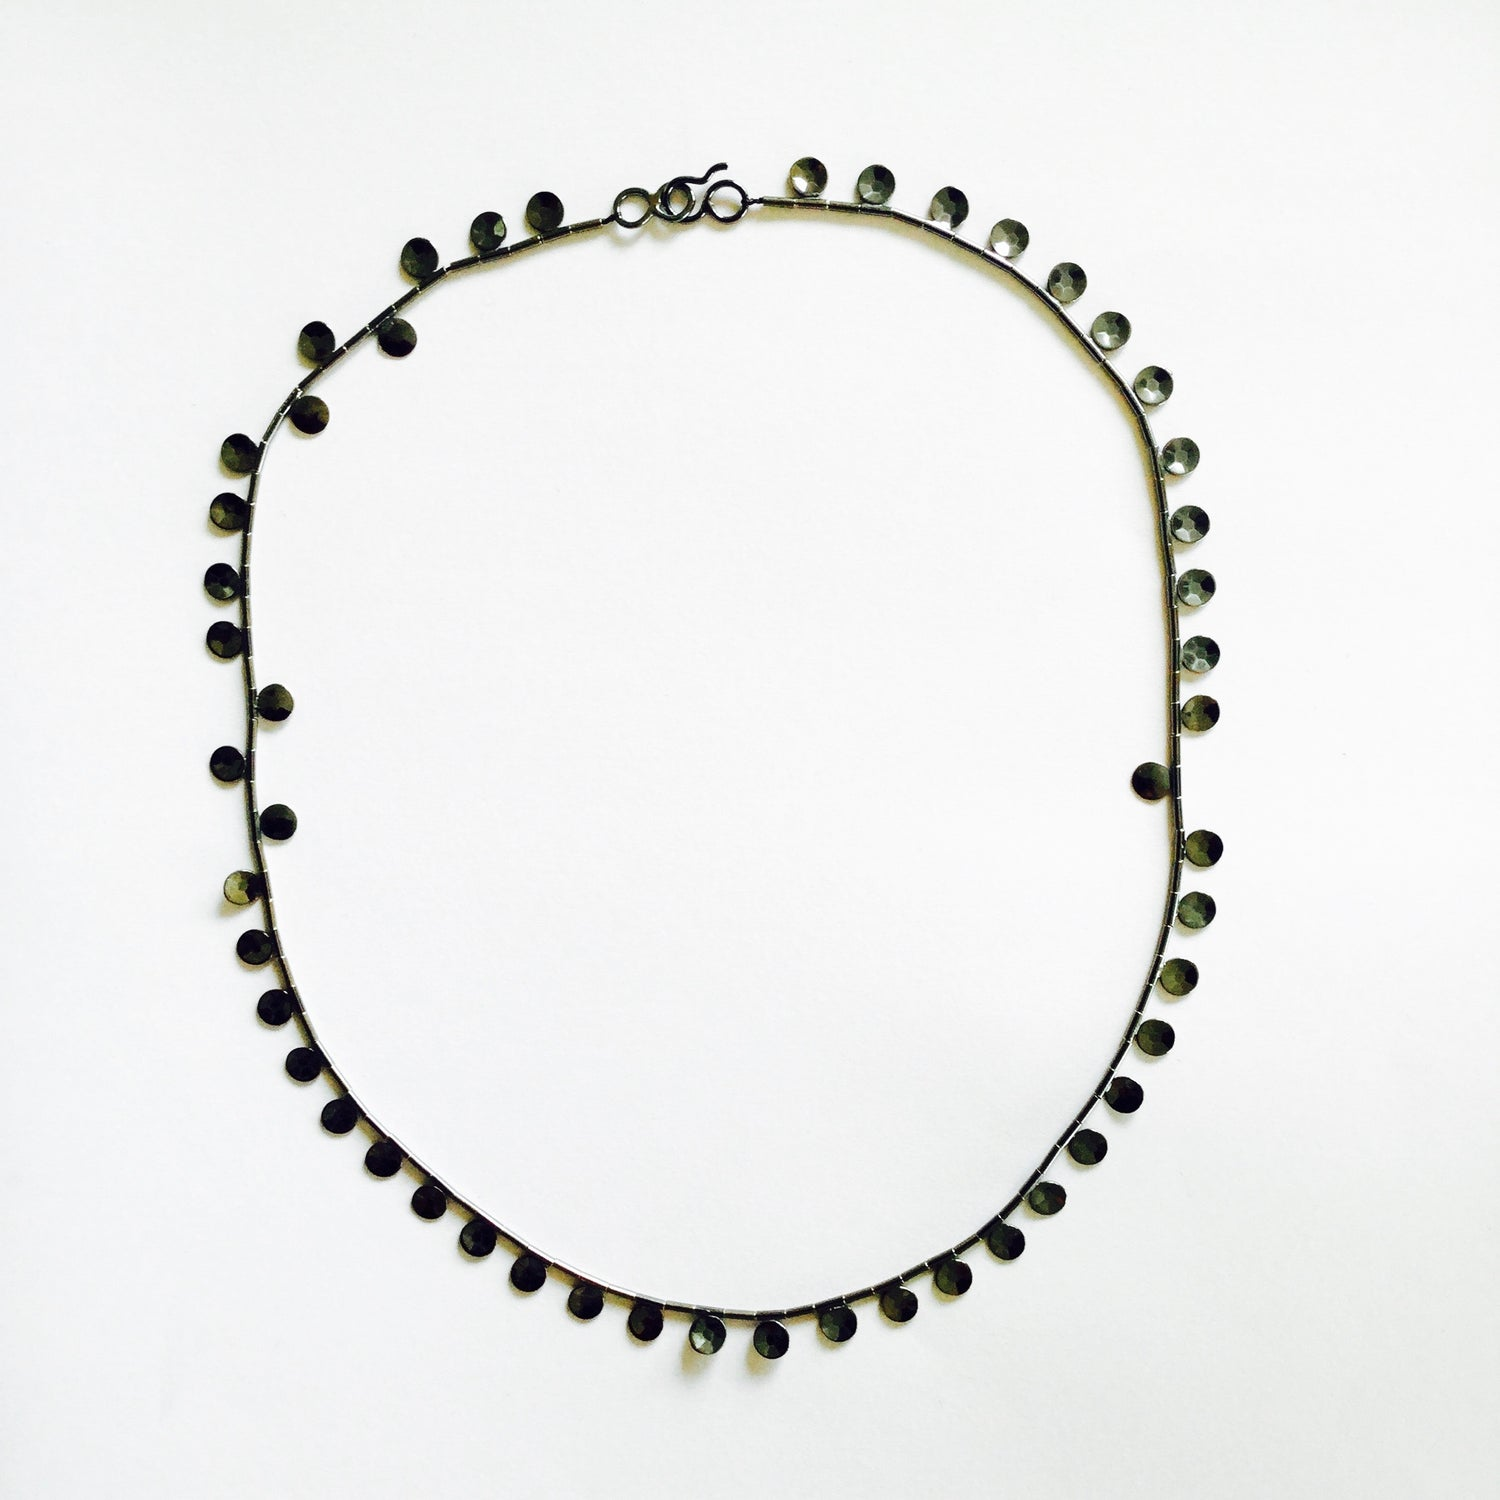 Jewel Length, Faceted Sequin Necklace - oxidised sterling silver